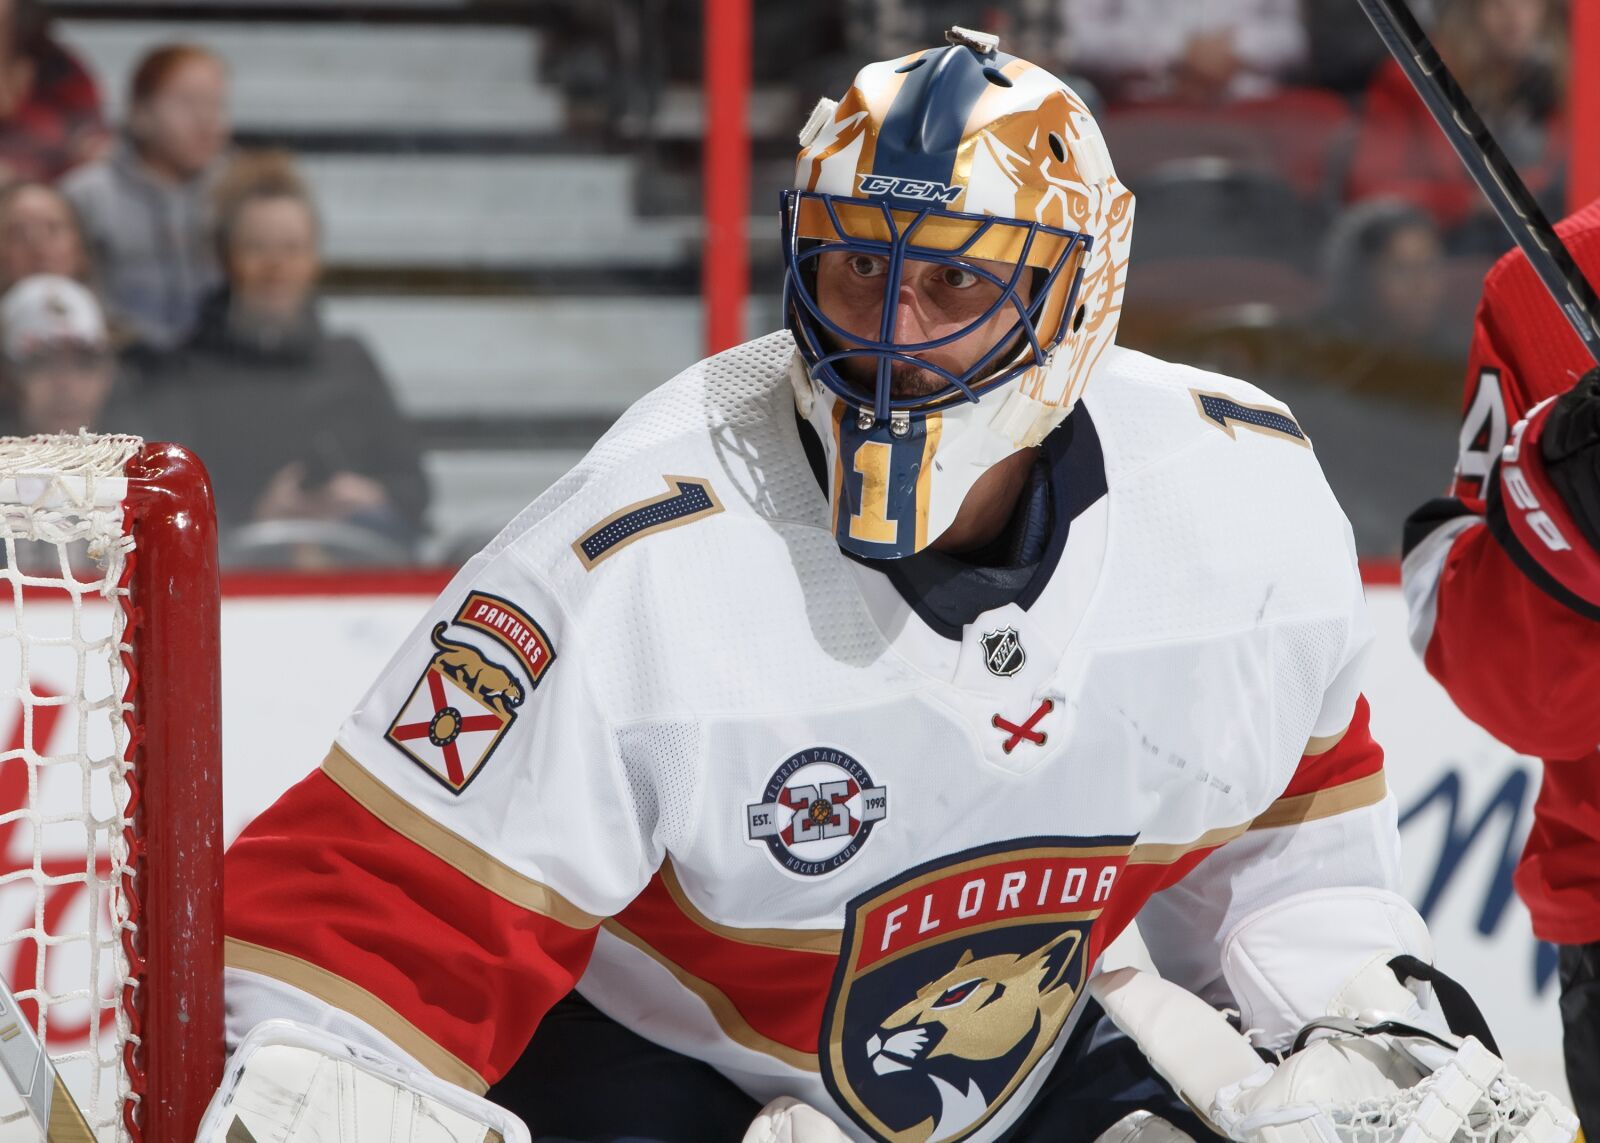 Roberto Luongo Should Go Down As The Most Underappreciated Goalie Ever